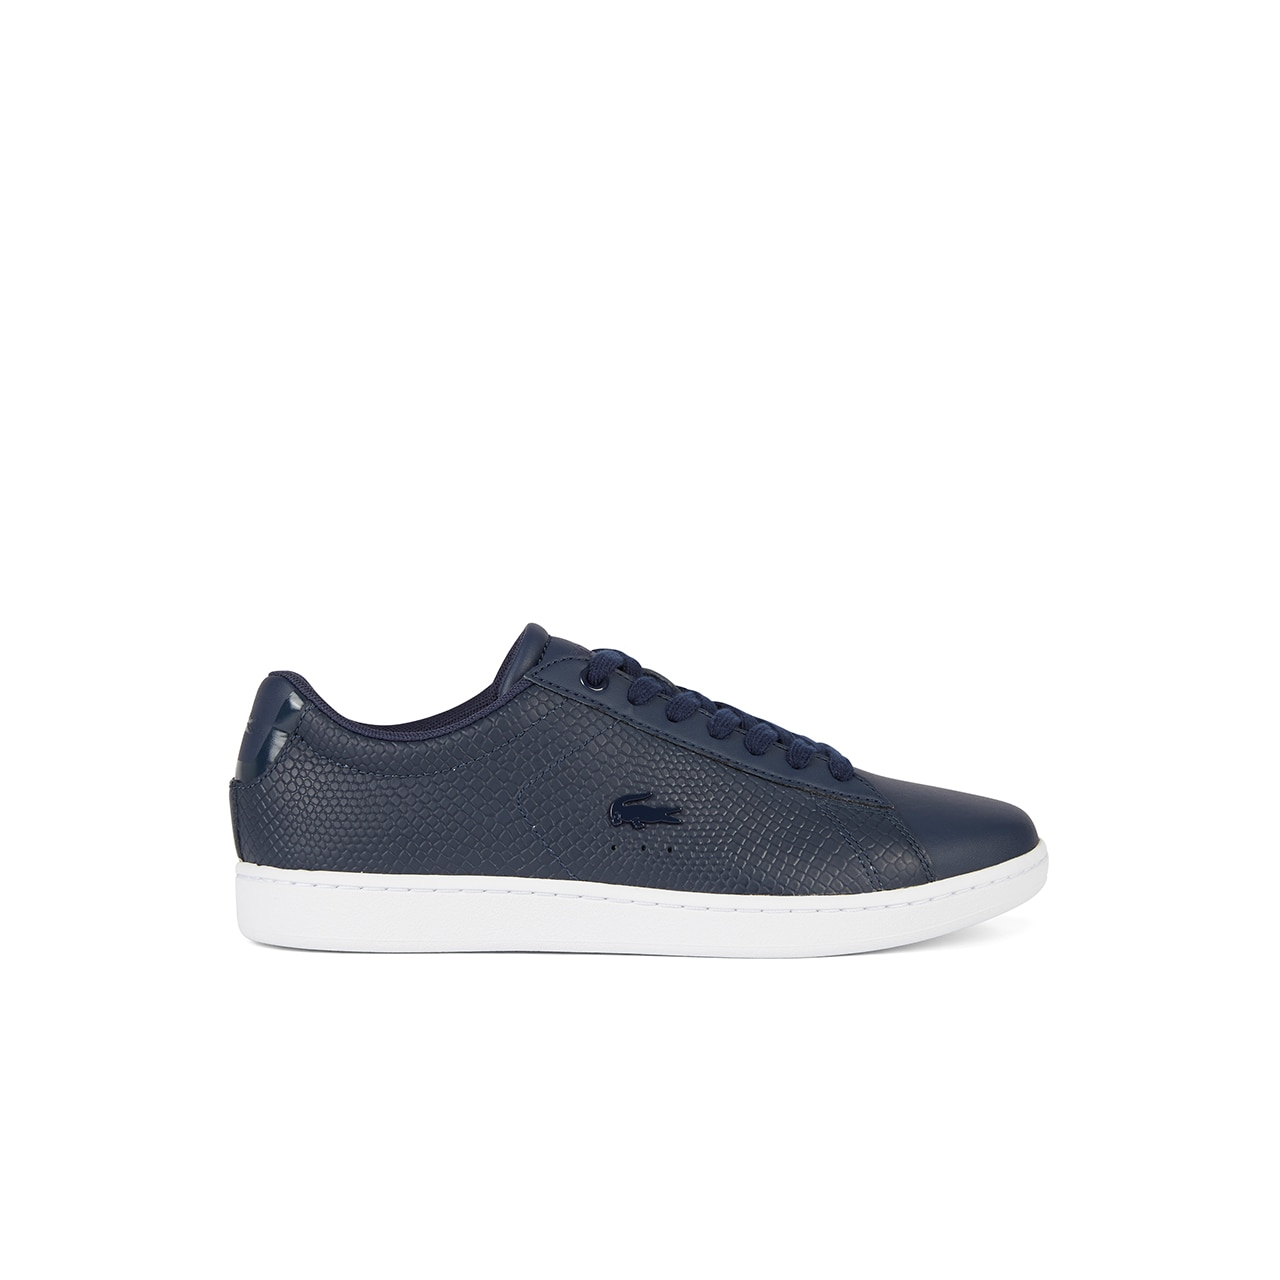 Women's Carnaby Evo Leather Sneakers